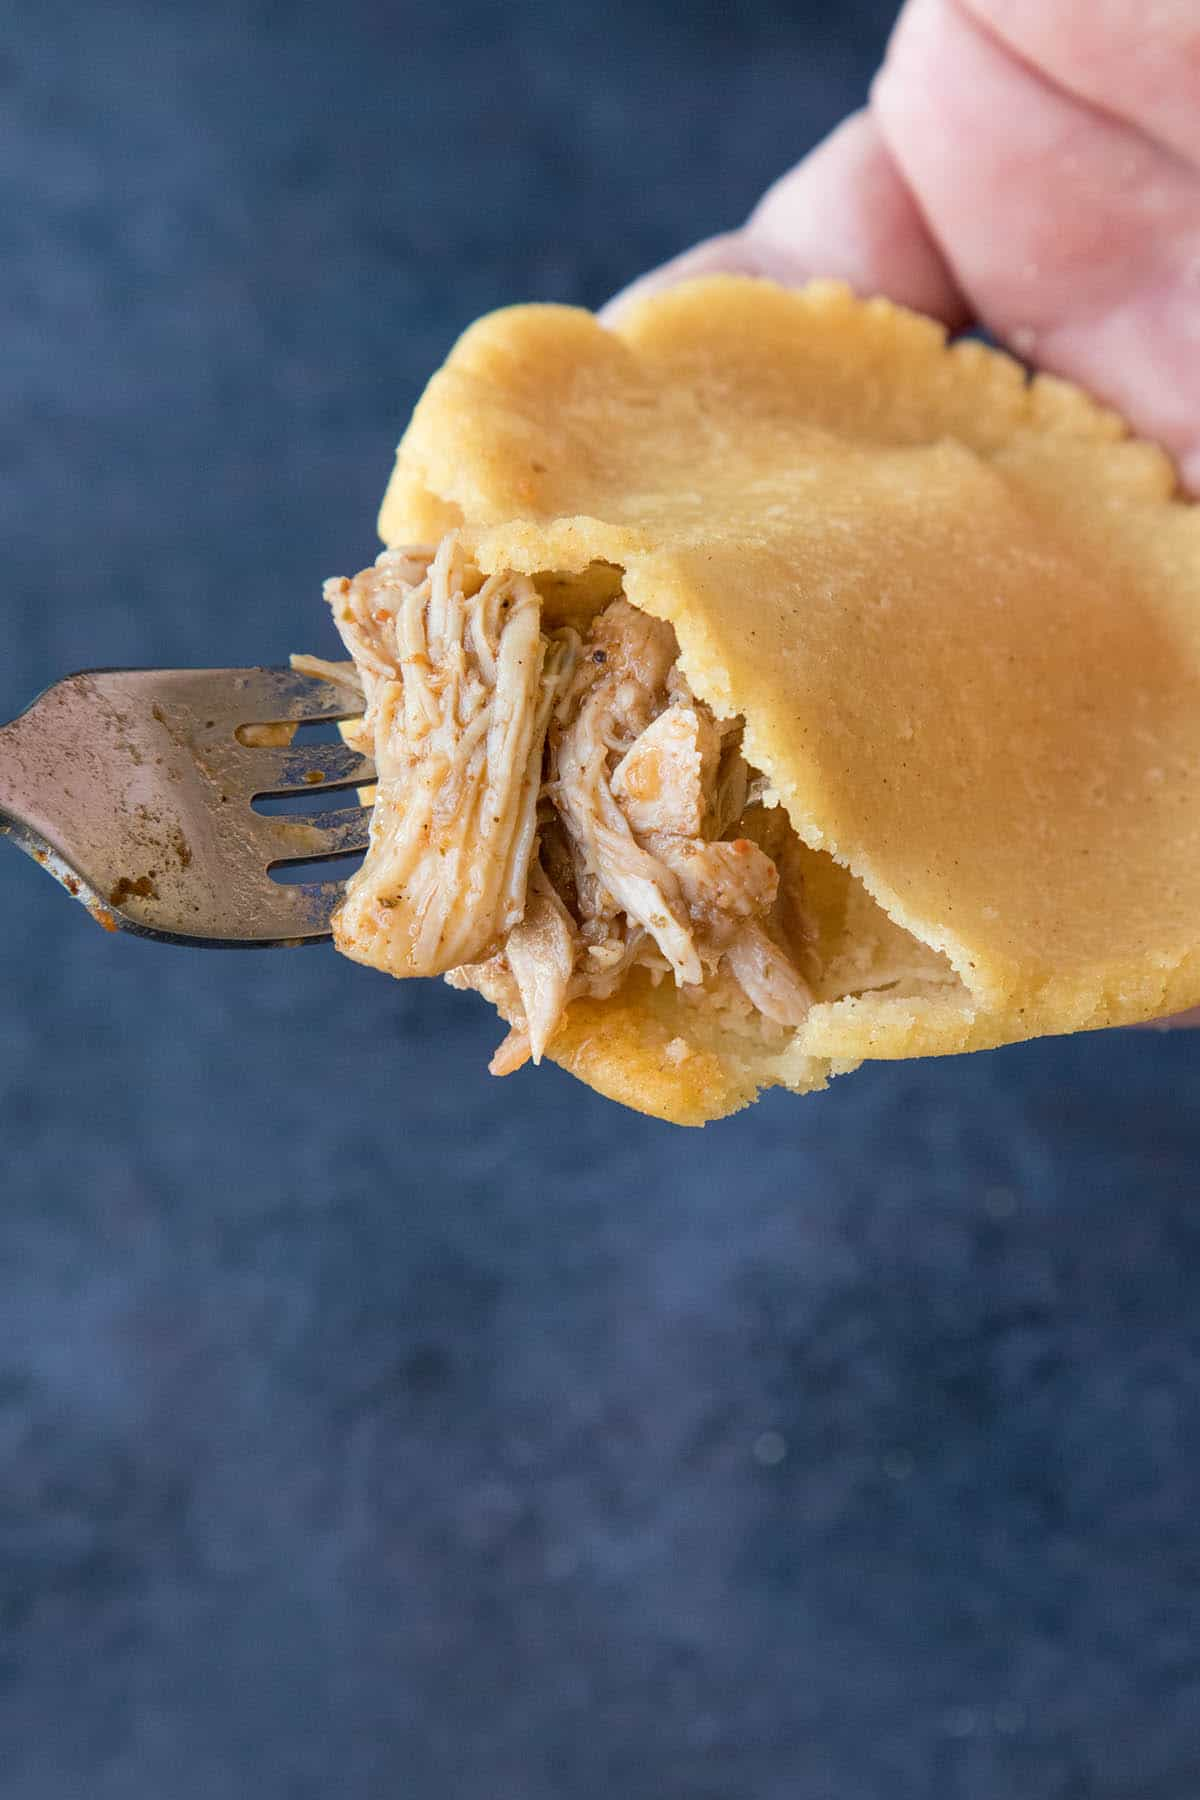 Stuffing a Mexican Gordita with delicious pulled chicken